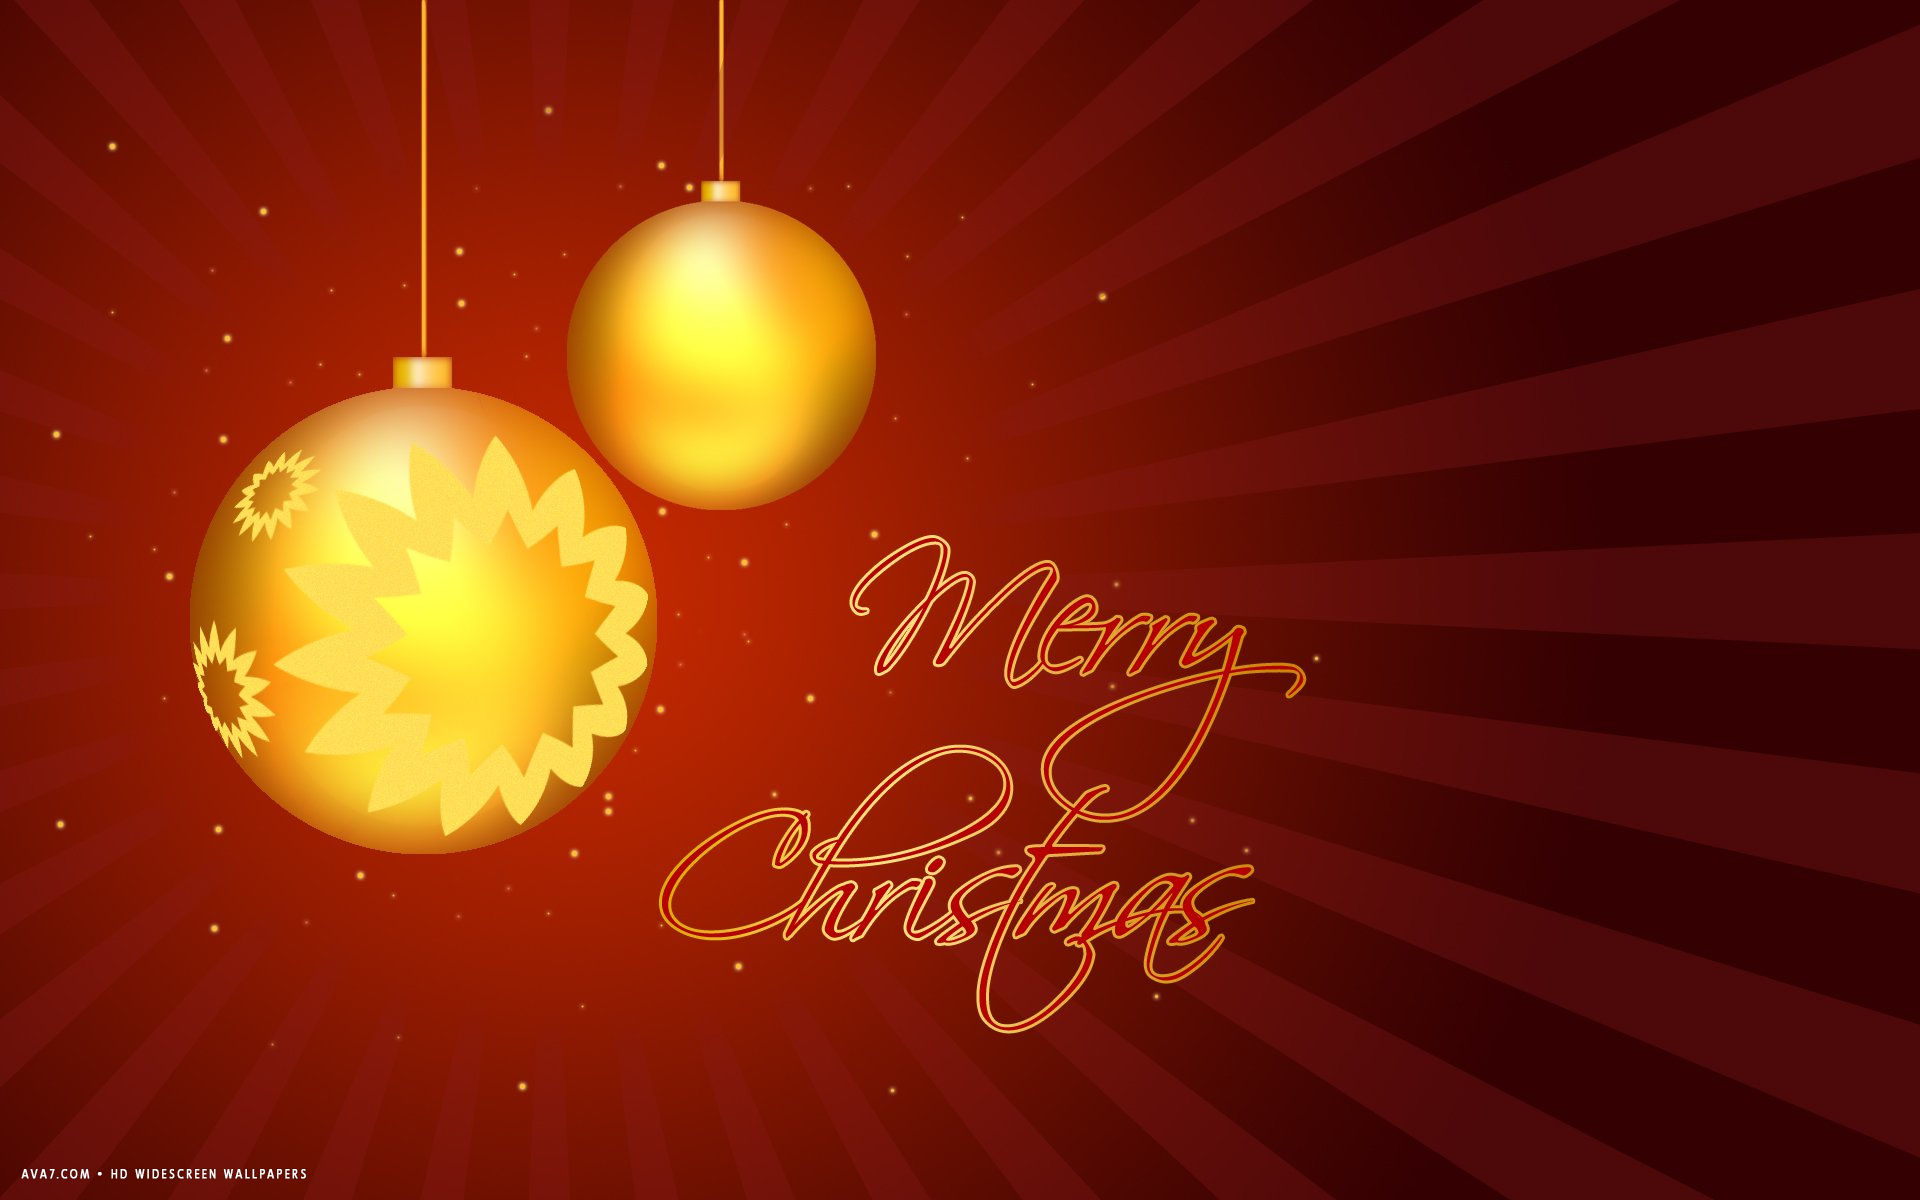 Merry Christmas Balls Red Vector Holiday Hd Widescreen - Christmas Day , HD Wallpaper & Backgrounds